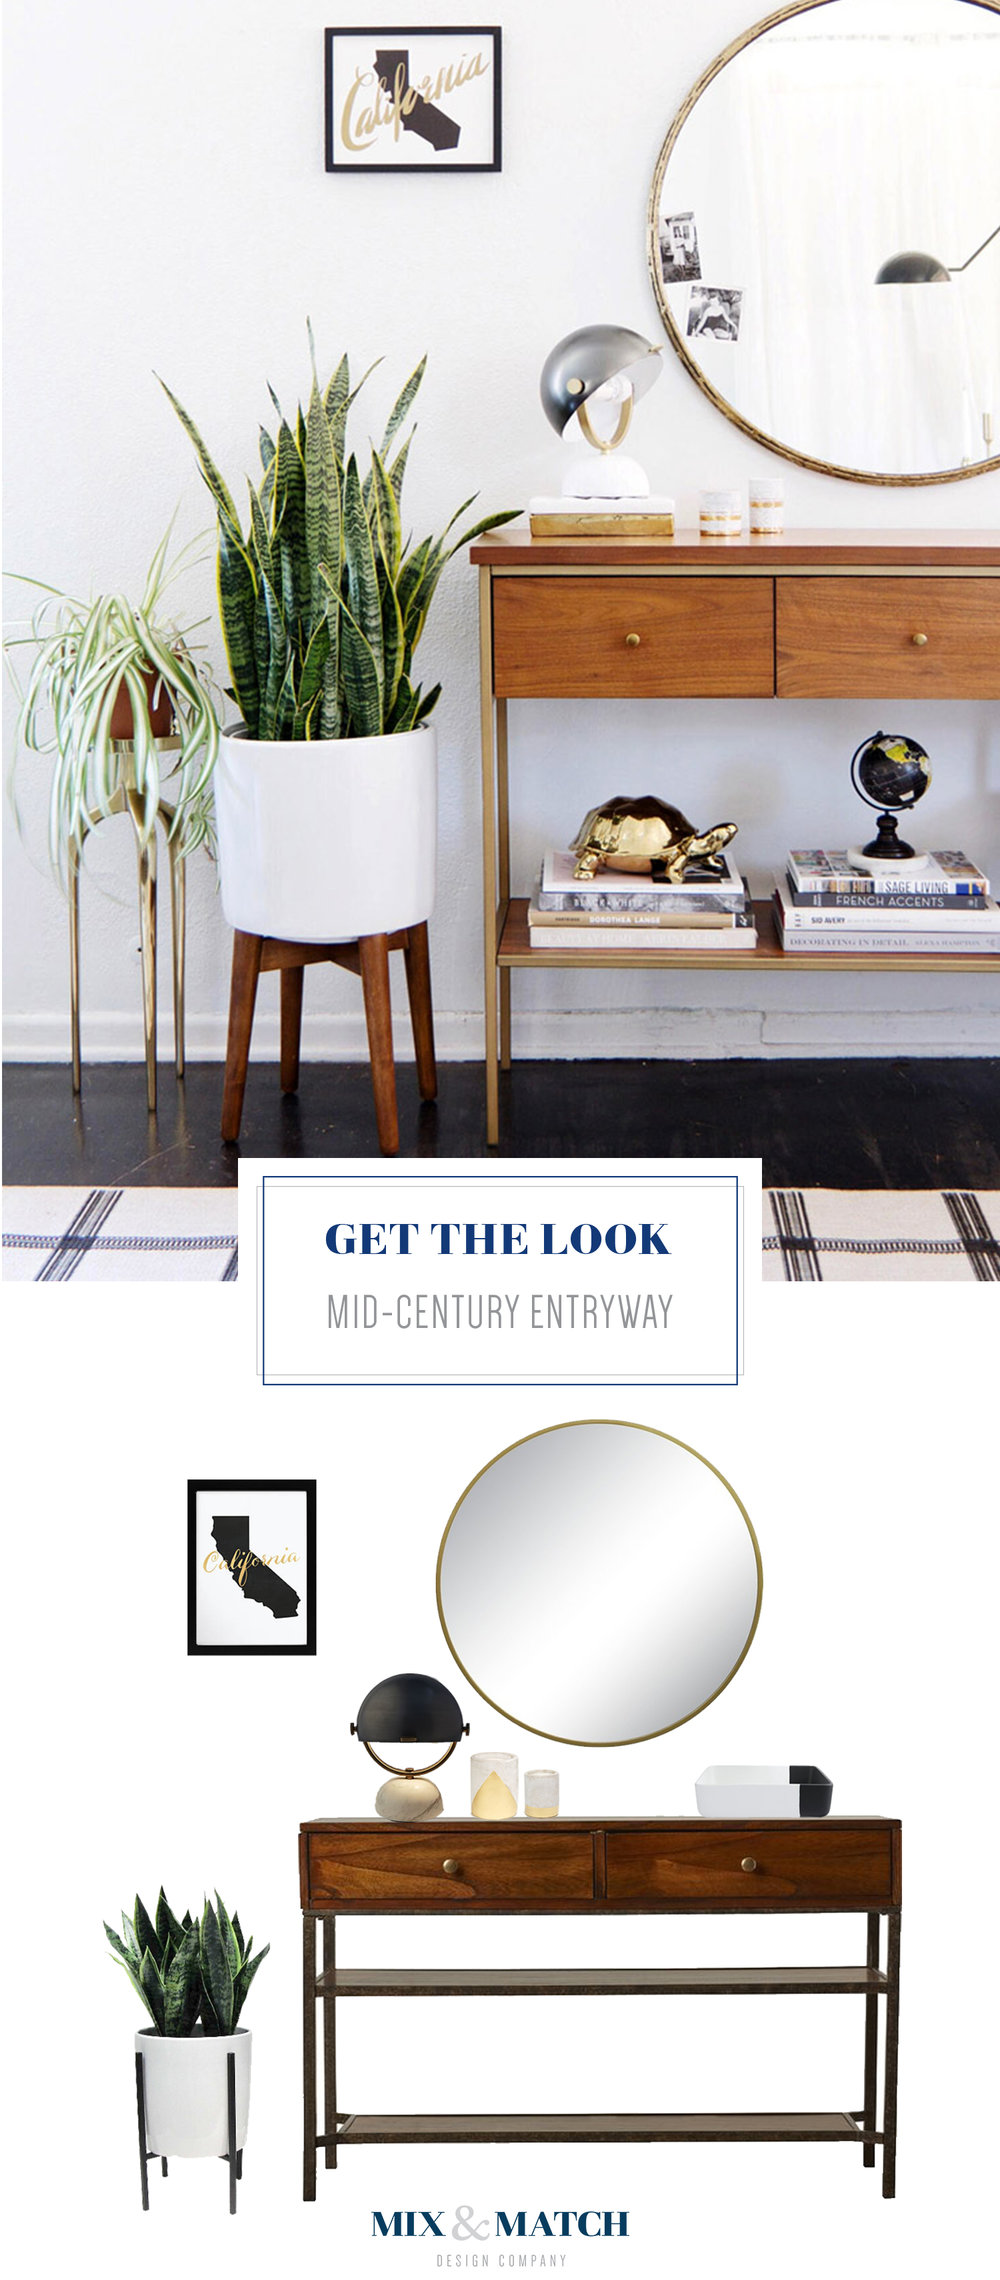 Get the look of this mid-century inspired entryway. Pair a console table with a round mirror, and add a few accessories to finish the look!